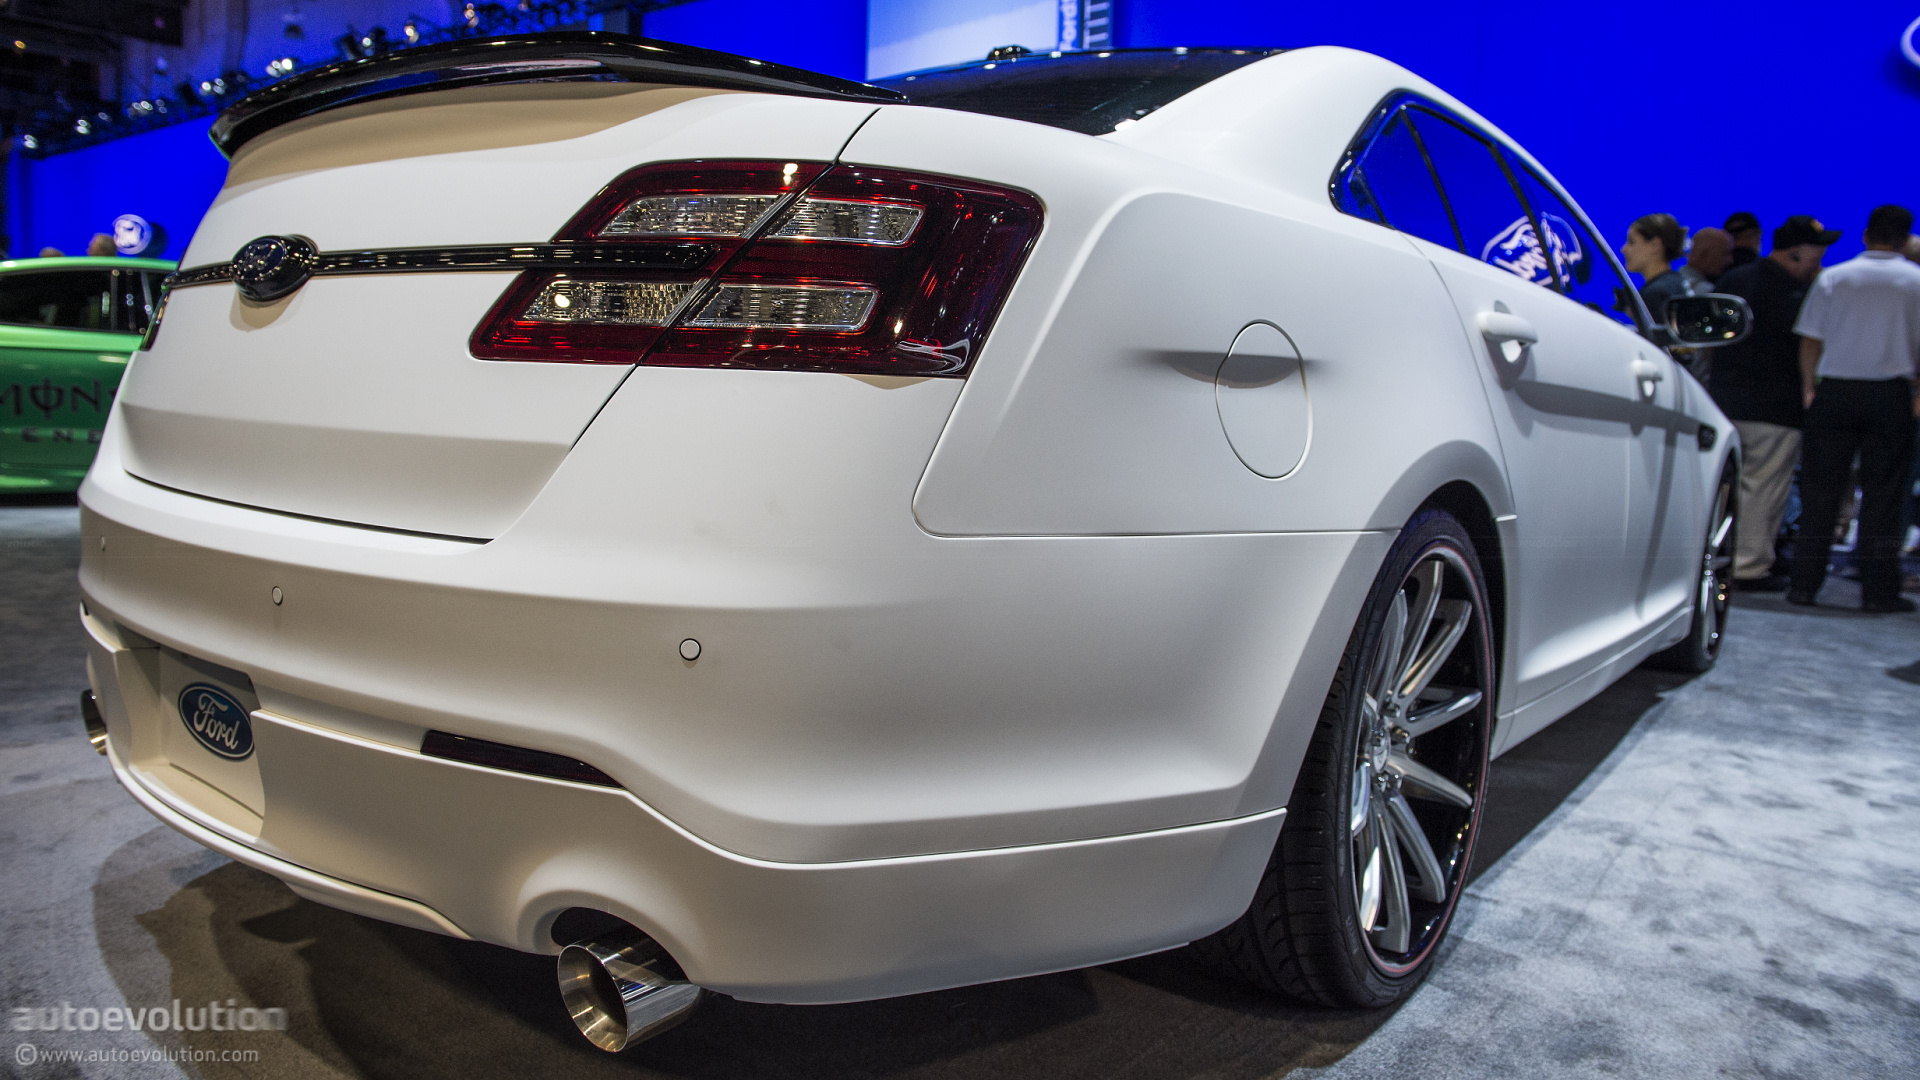 2013 Ford Taurus SHO by CGS Motorsports #19/19